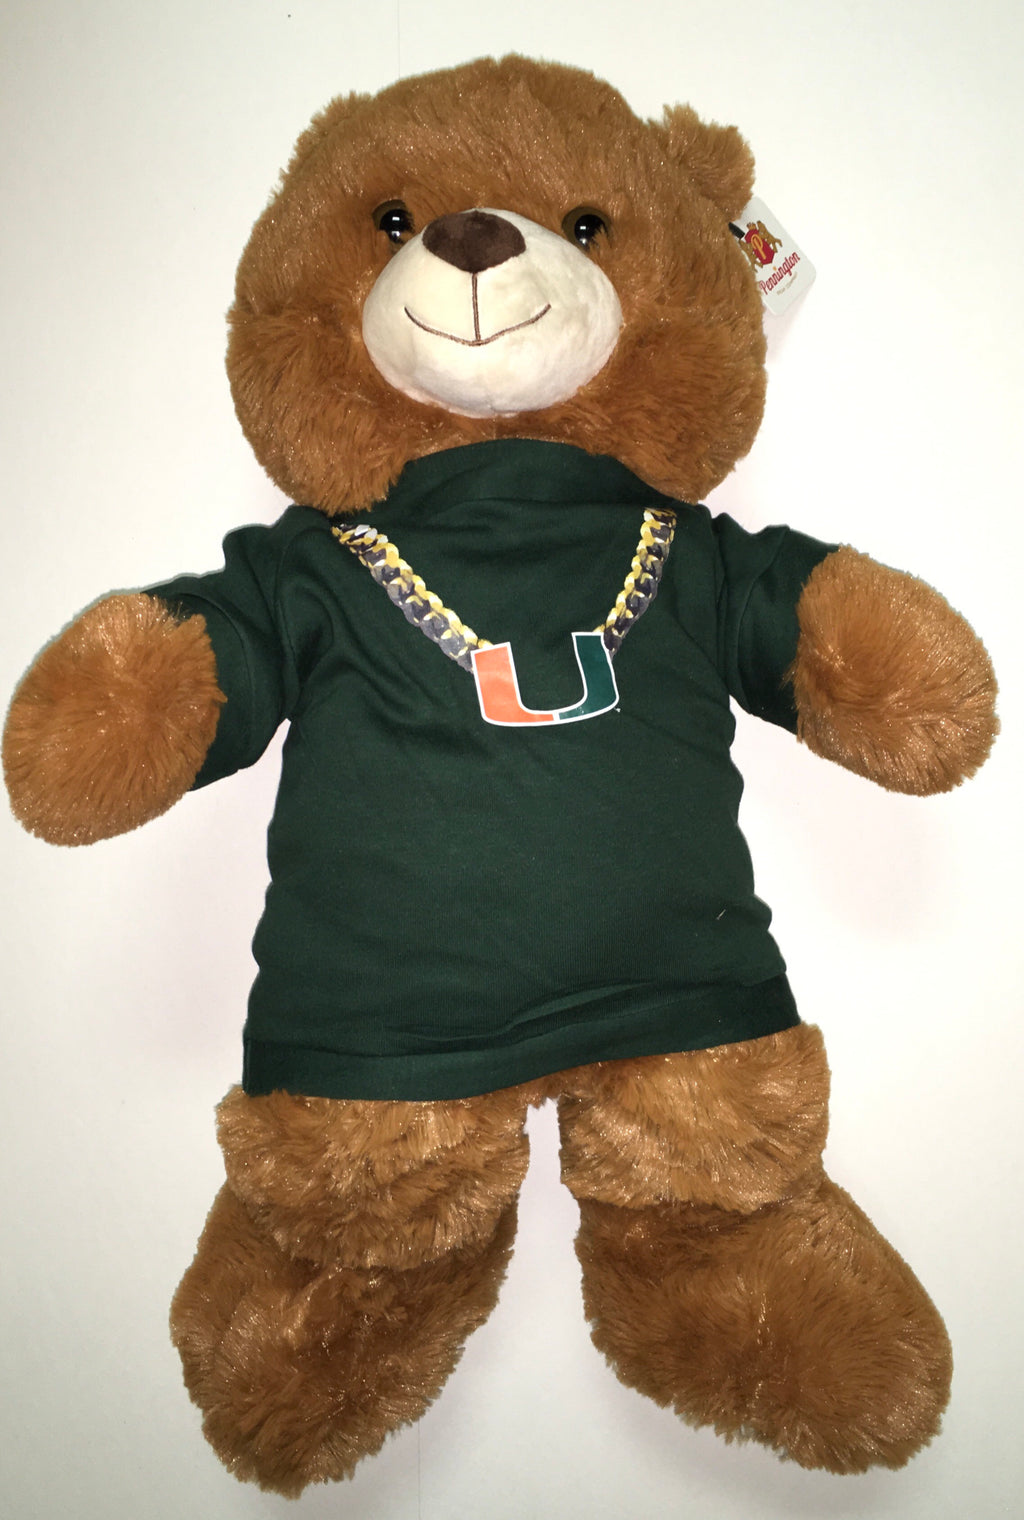 "Miami Hurricanes 24"" Plush Turnover Chain Bear - Green"